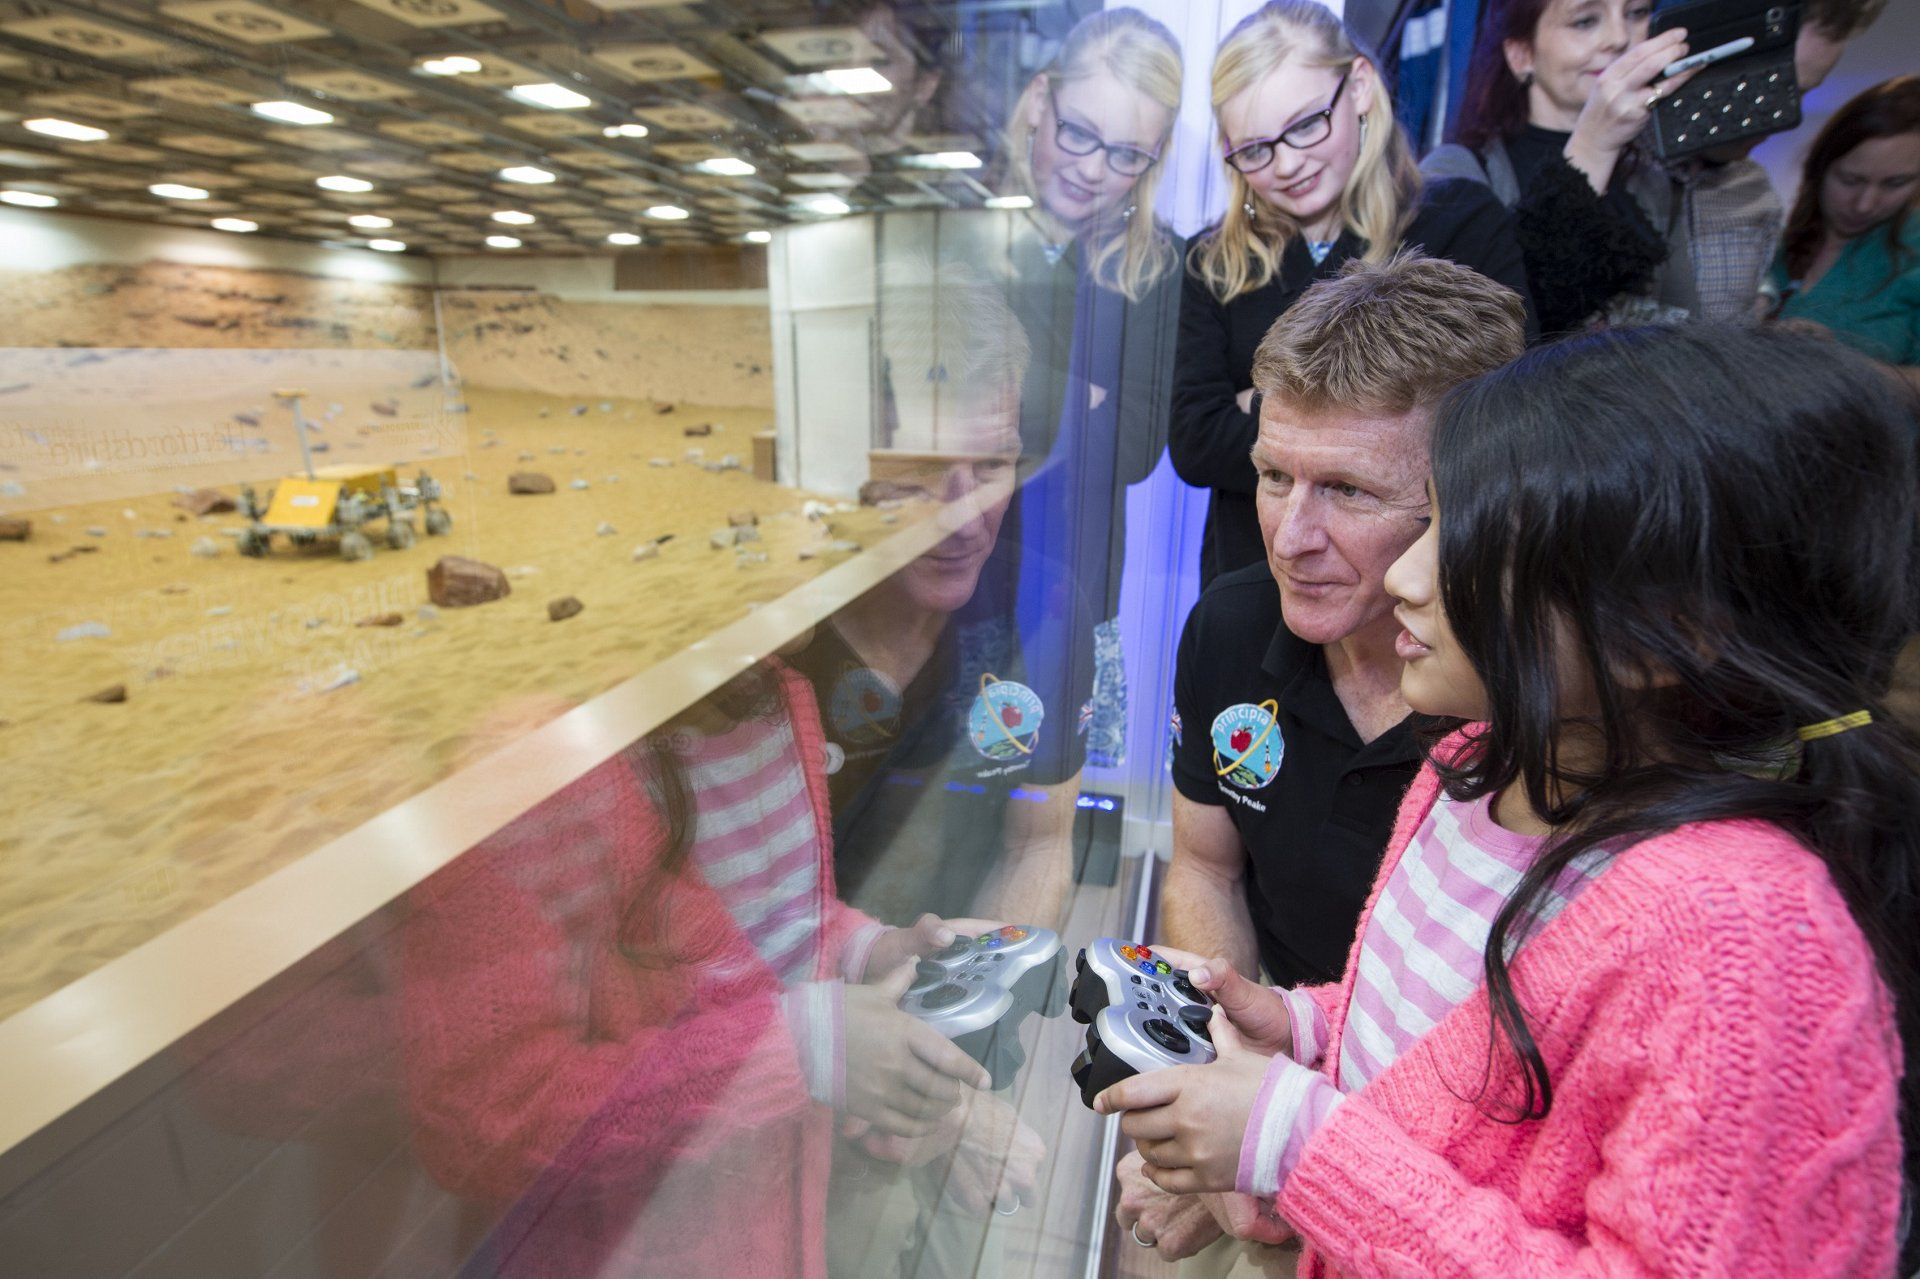 ESA Astronaut Tim Peake opens the Airbus Foundation Discovery Space in Stevenage